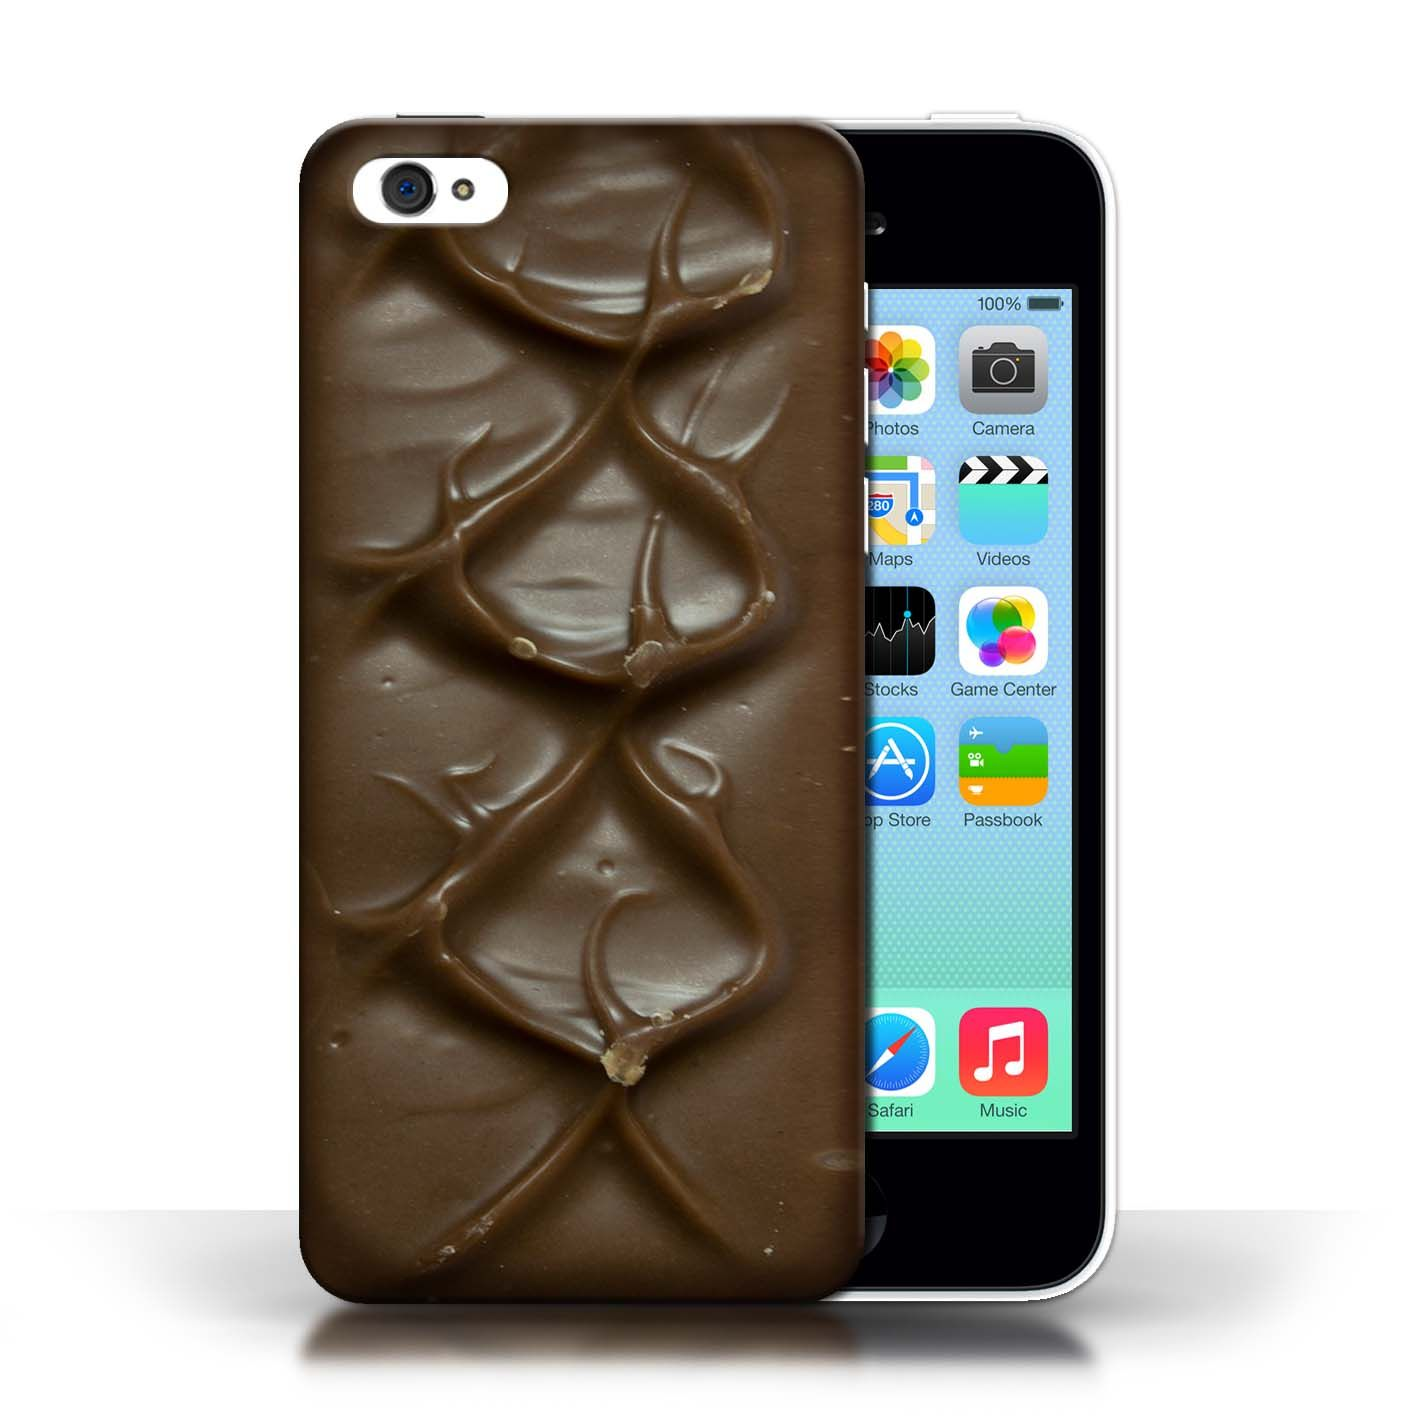 Designer Mobile Phone Case / Chocolate Collection / Bar/Ripple #designer #case #cover #iphone #smartphone #food #sweet #chocolate